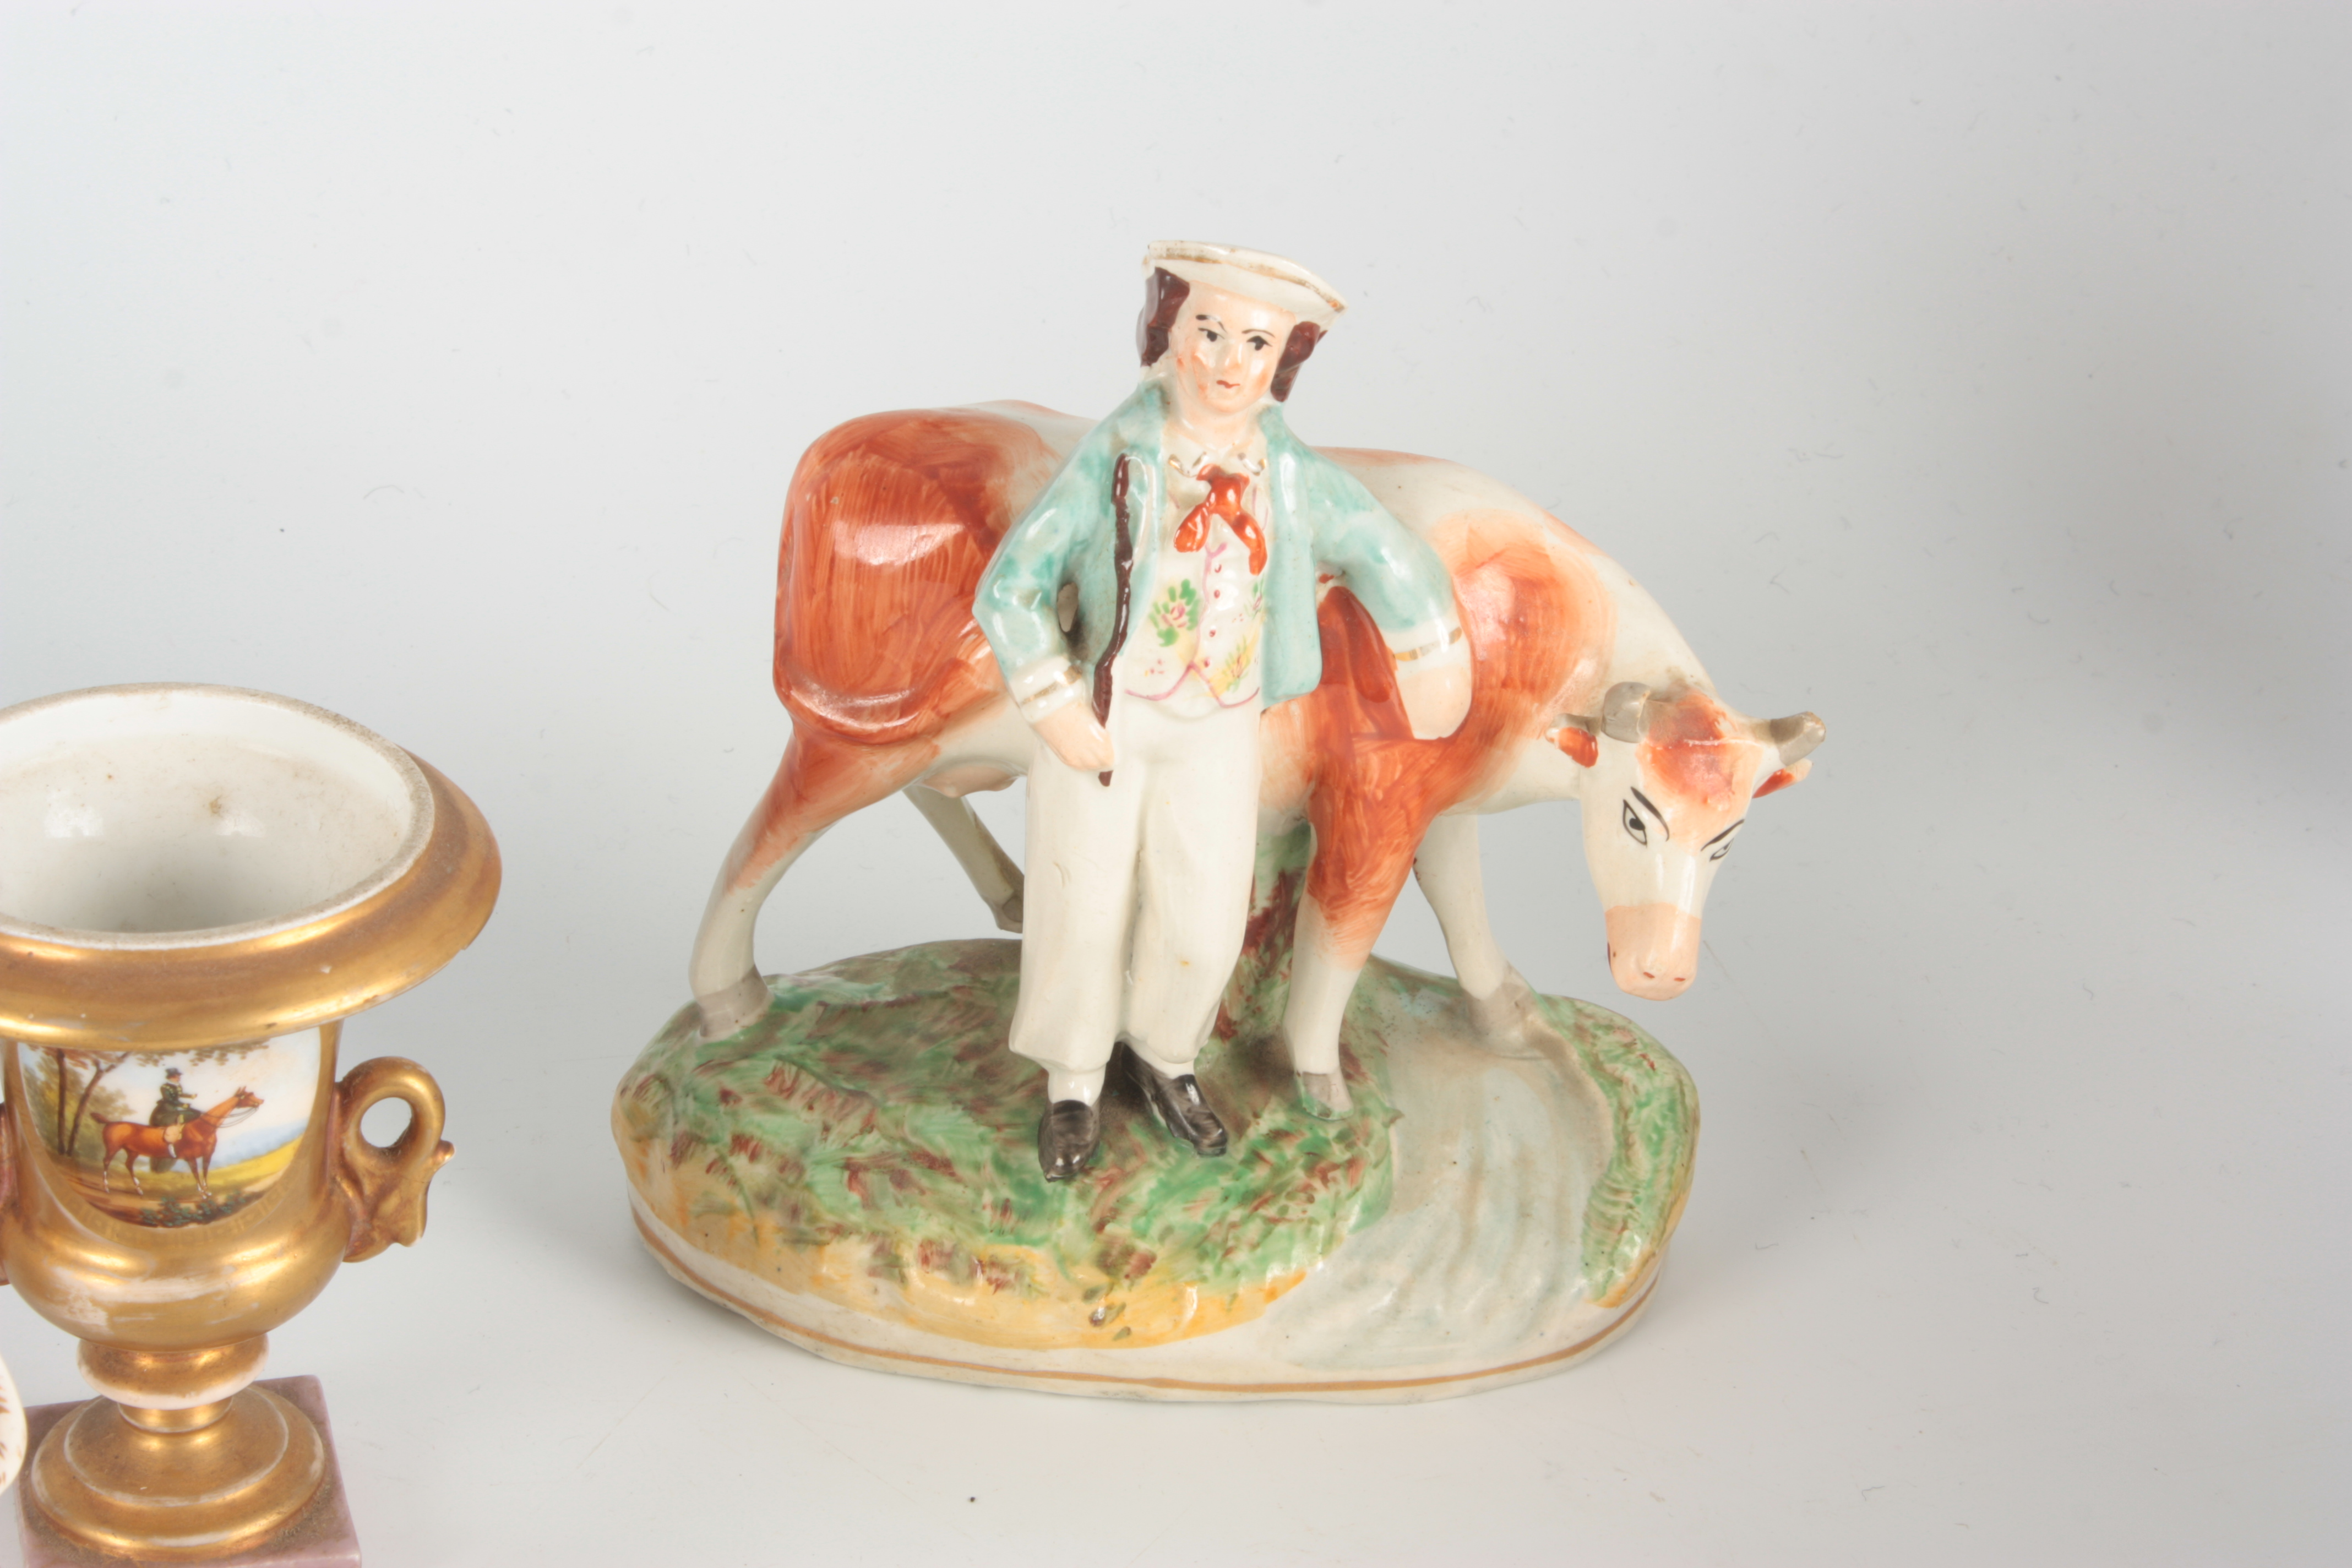 A 19TH CENTURY STAFFORDSHIRE FIGURE depicting a seated piper with dog at foot 12.5cm high A - Image 4 of 6